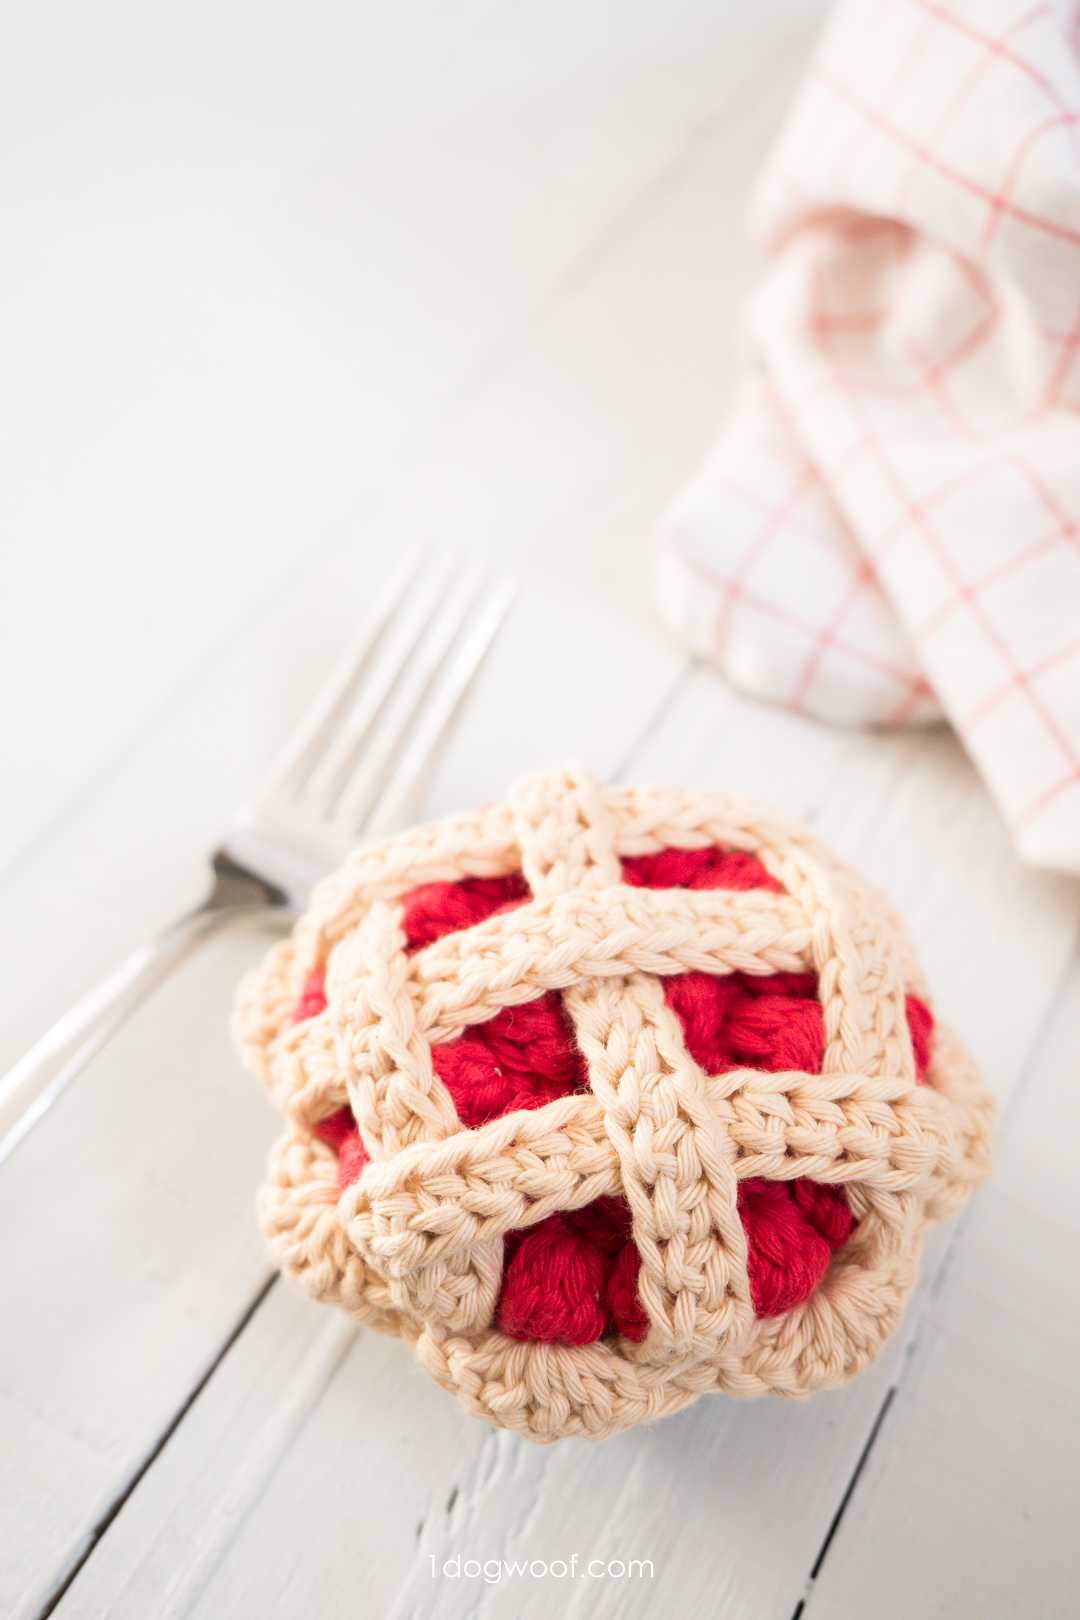 Crochet a Cherry Pie for Play Food or Amigurumi